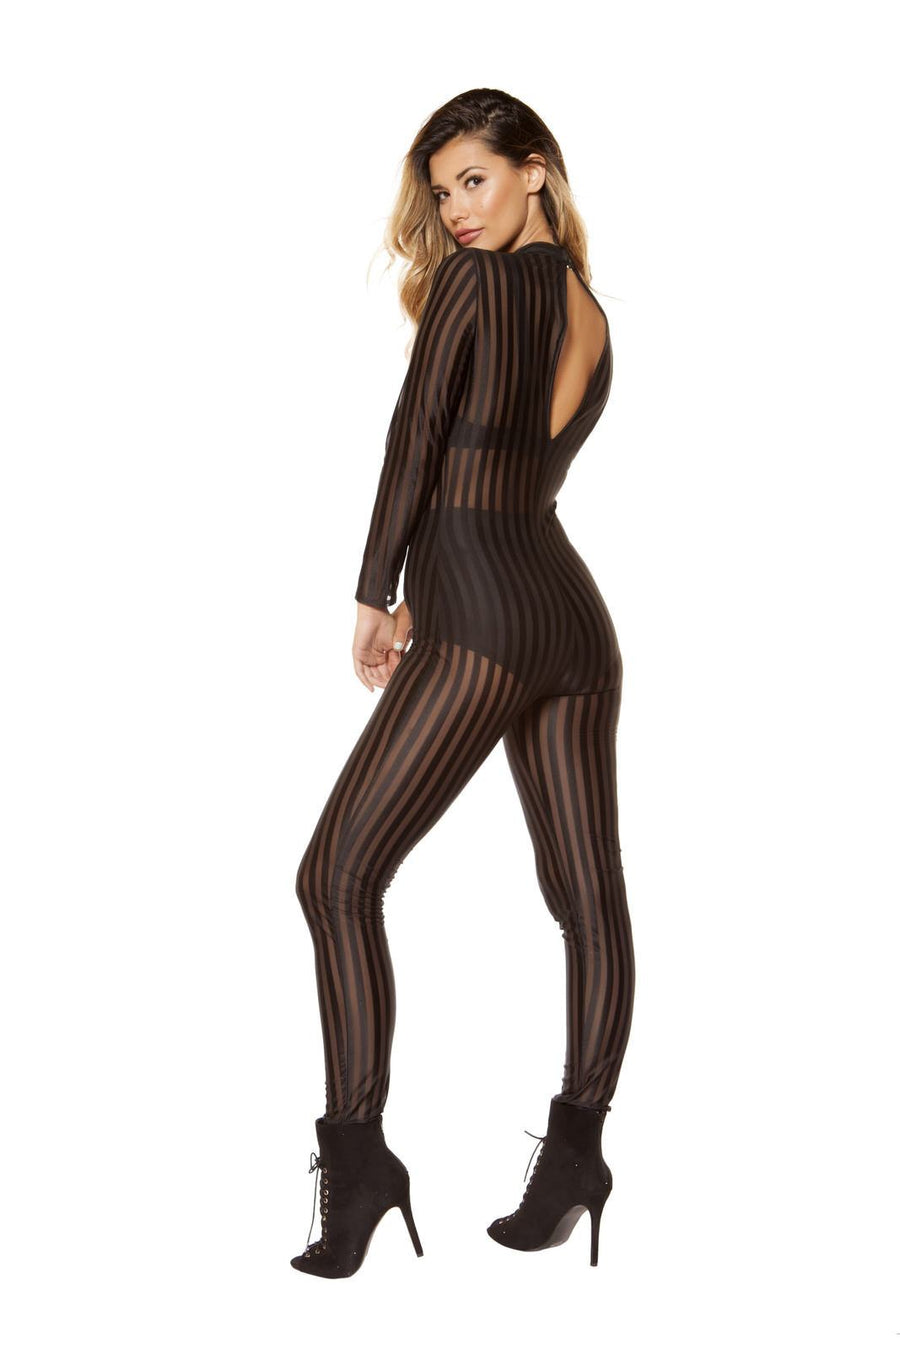 Semi-Sheer Striped Mesh Jumpsuit - Rave Party, Roma Costume, YourLamode